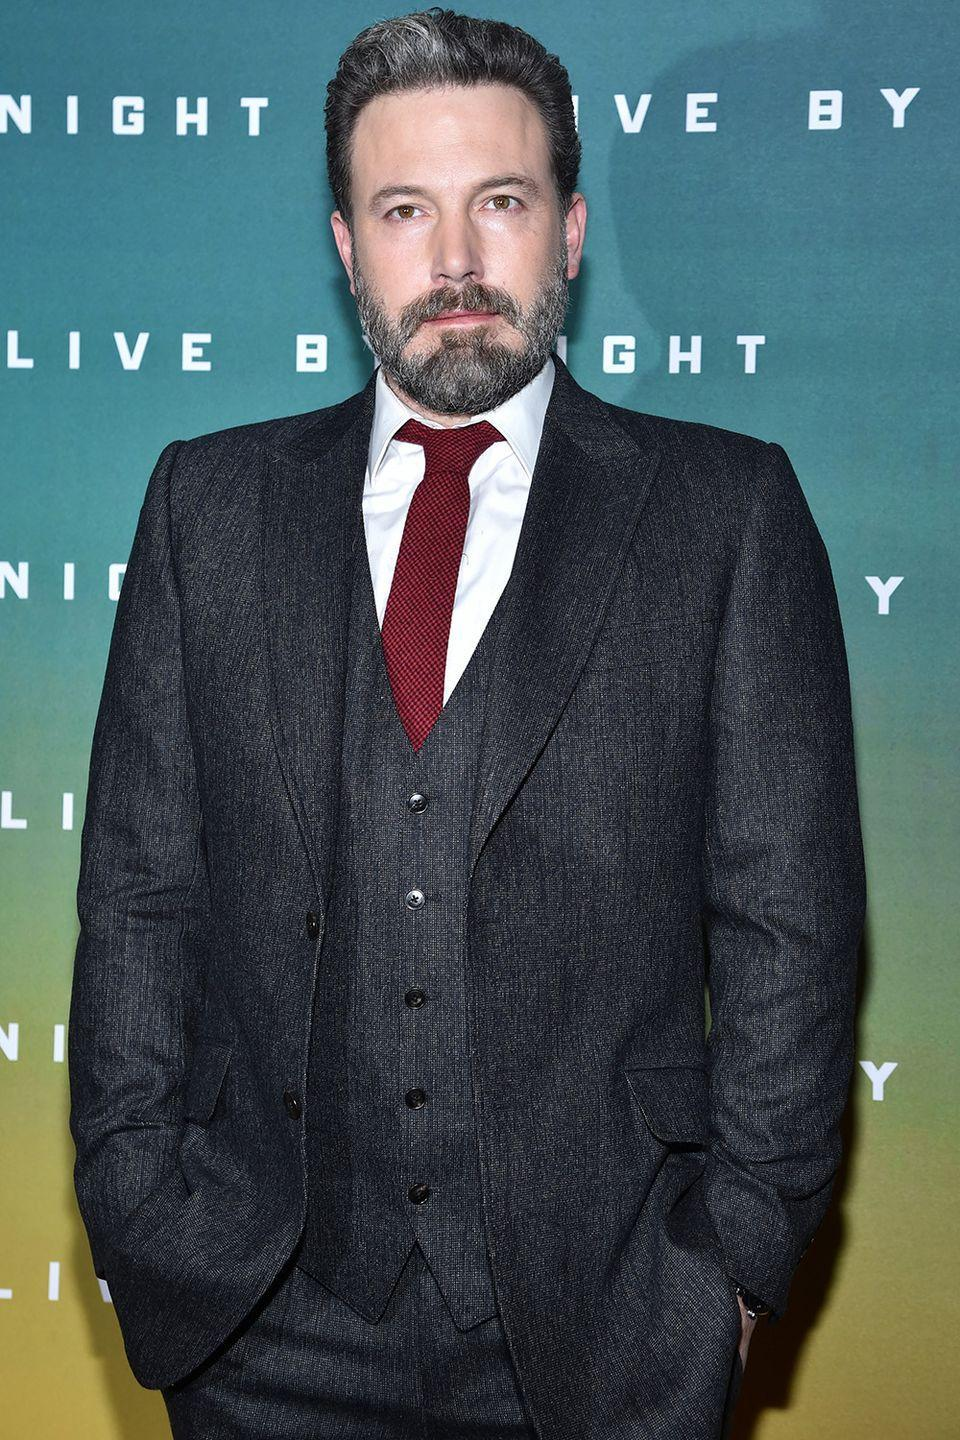 """<p>While the actor has continued to struggle with his alcohol addiction over the years, Affleck opened up earlier this year on his <a href=""""https://www.facebook.com/benaffleck/posts/1425085557565867"""" rel=""""nofollow noopener"""" target=""""_blank"""" data-ylk=""""slk:Facebook"""" class=""""link rapid-noclick-resp"""">Facebook</a> page in a post where he admits to completing treatment again in order to be the best father that he can be. He even brought a <a href=""""https://www.harpersbazaar.com/celebrity/latest/a21422/ben-affleck-took-a-sober-coach-to-oscars/"""" rel=""""nofollow noopener"""" target=""""_blank"""" data-ylk=""""slk:sober coach"""" class=""""link rapid-noclick-resp"""">sober coach</a> to the Oscars for support. </p>"""